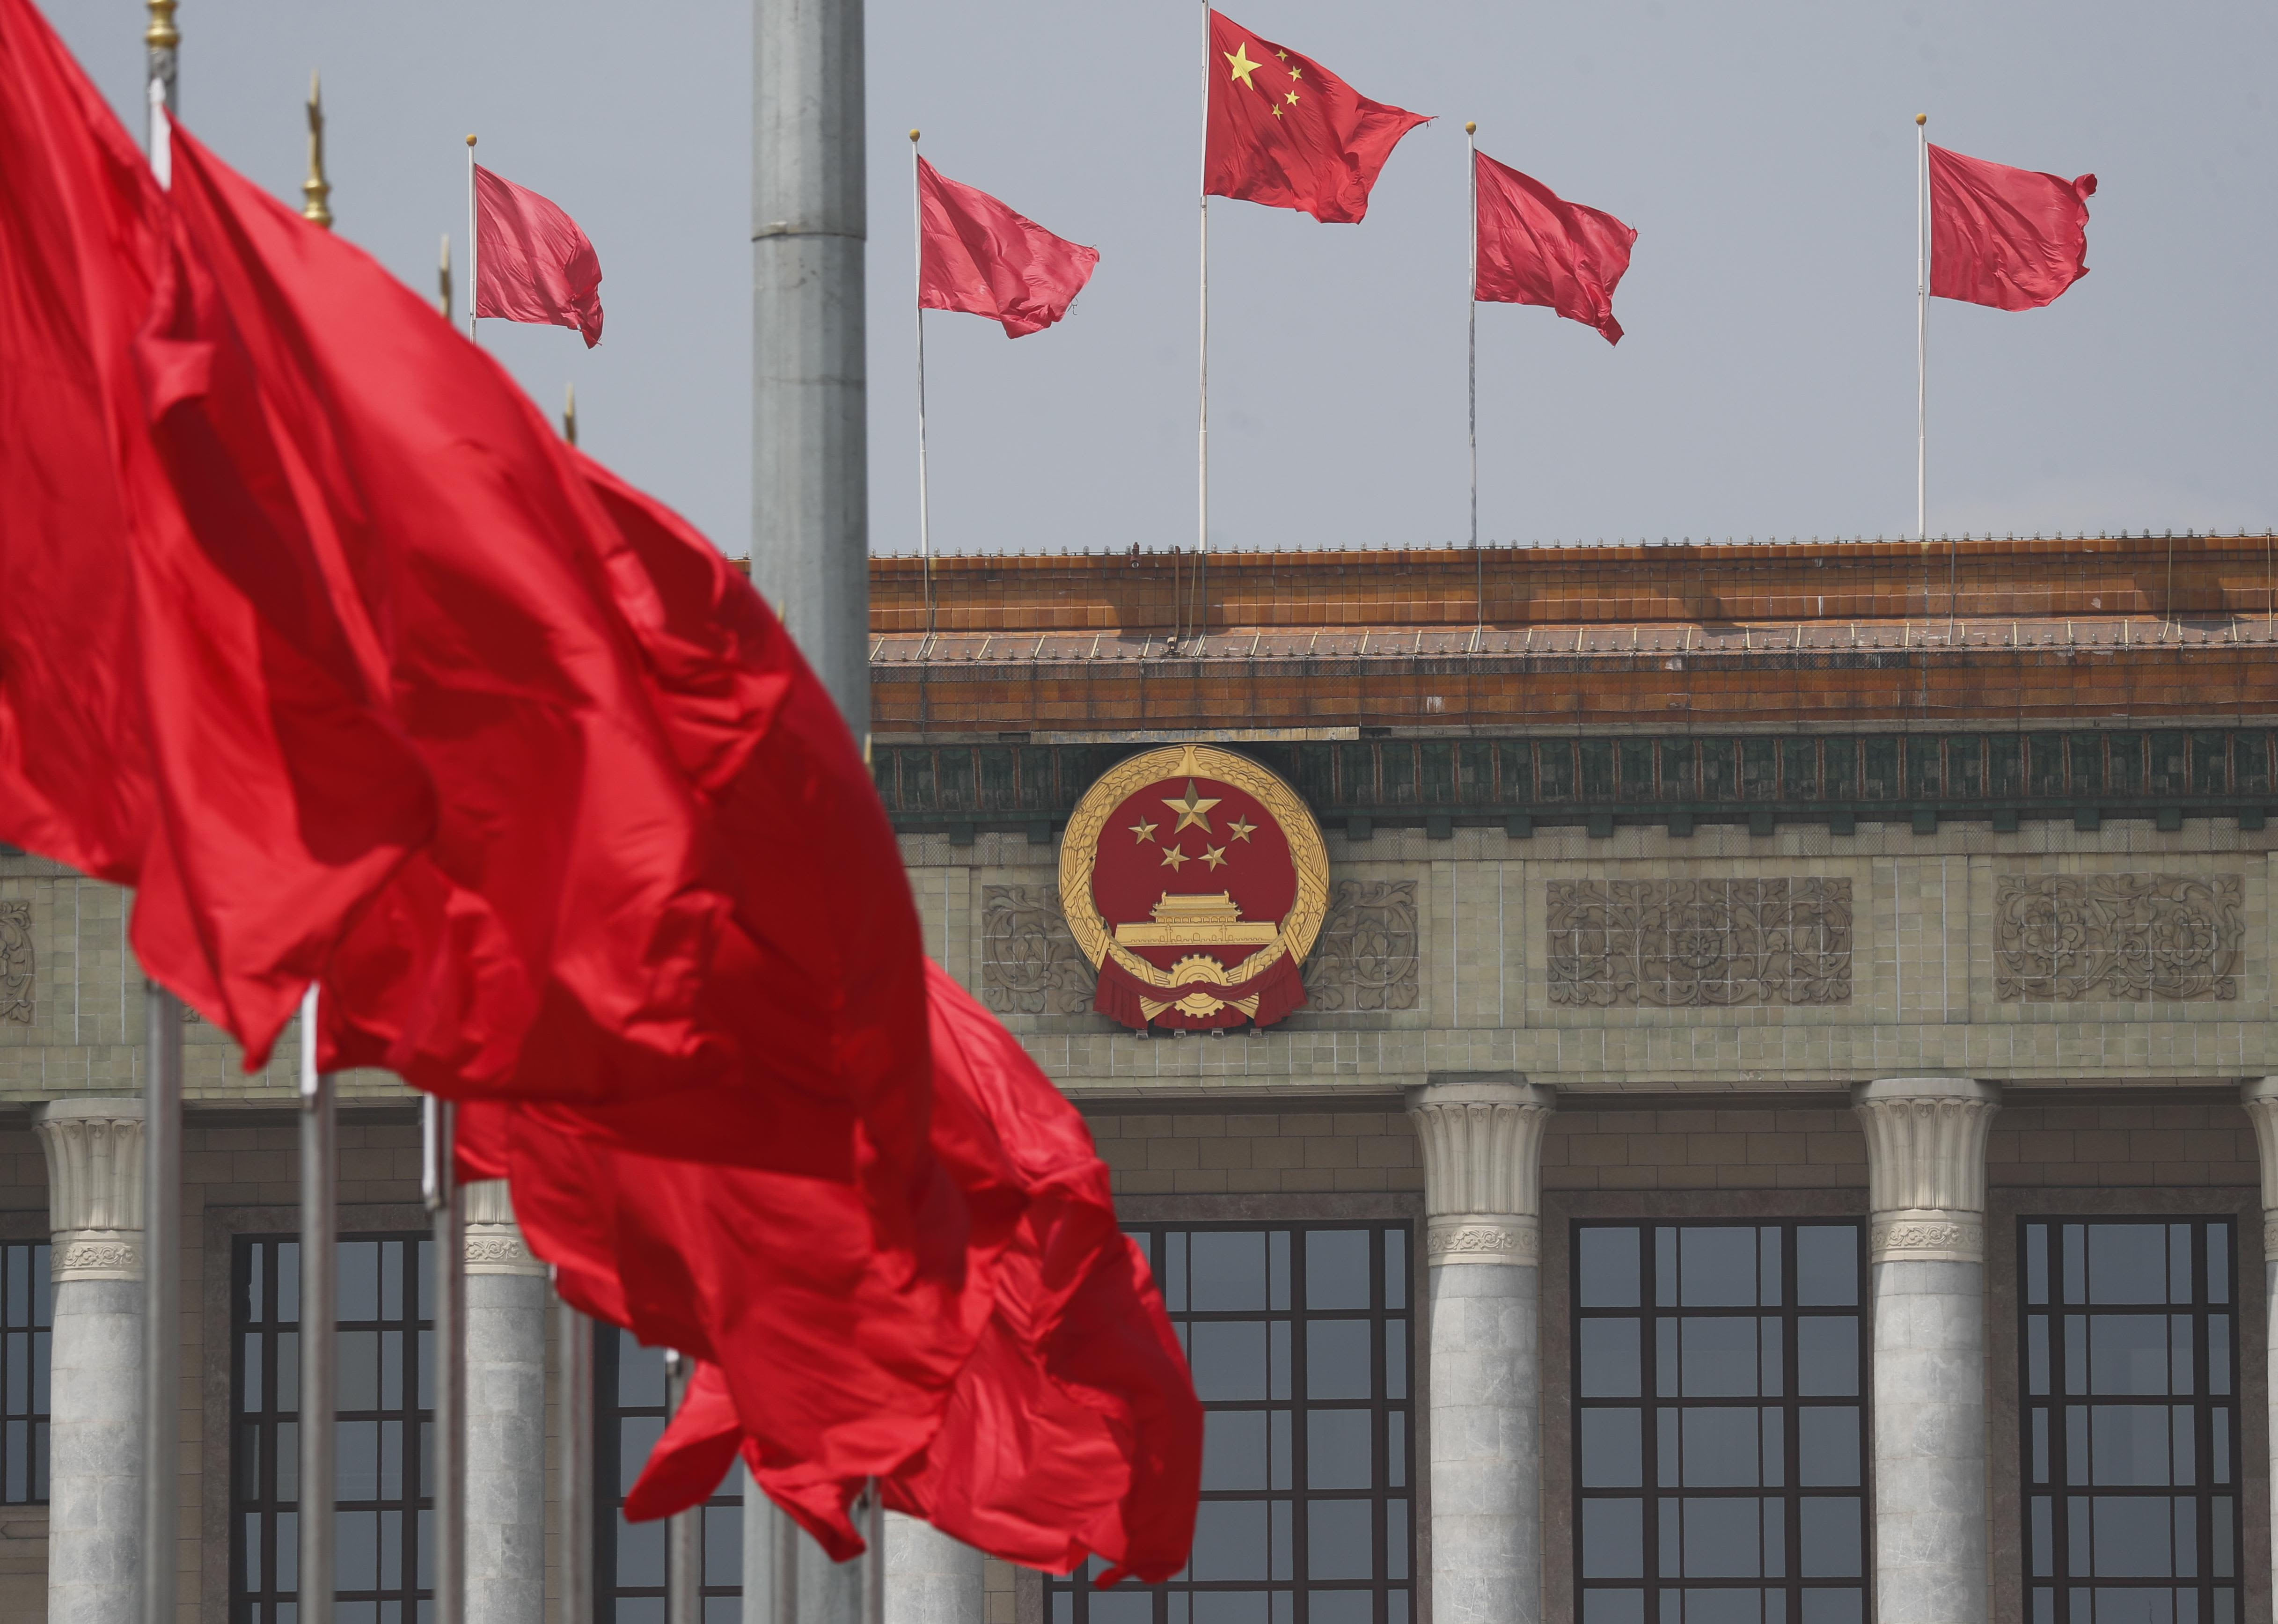 After coronavirus, China's economy looks set to grow as world braces for contraction